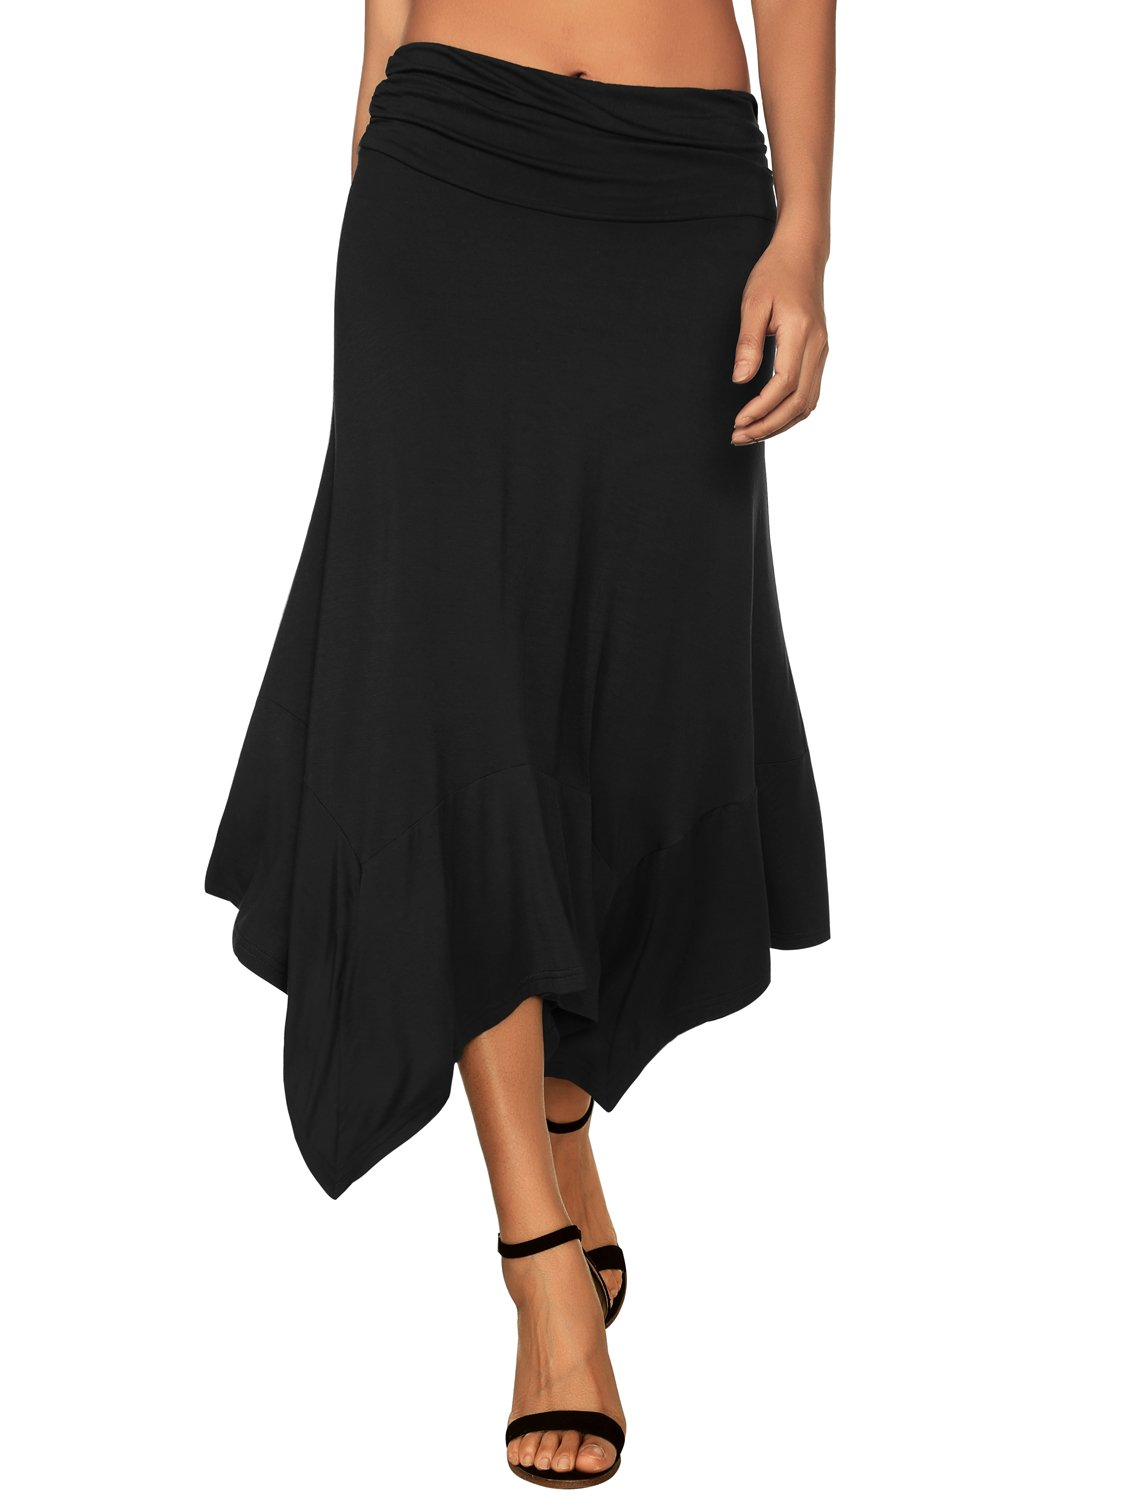 DJT Women's Flowy Handkerchief Hemline Midi Skirt Medium Black